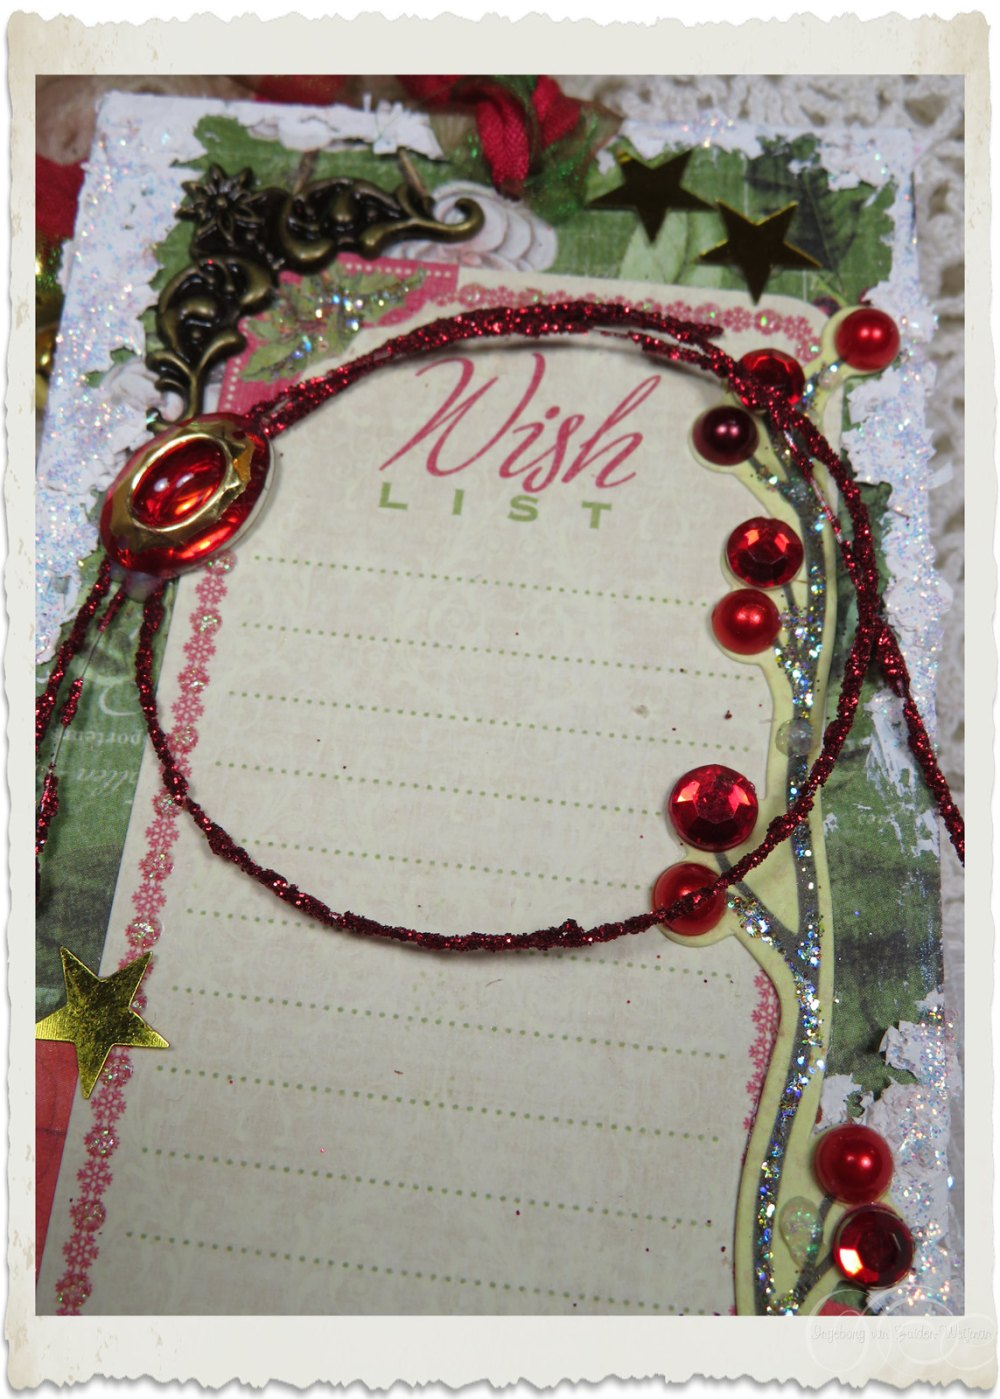 Details of wish list on handmade Christmas tag